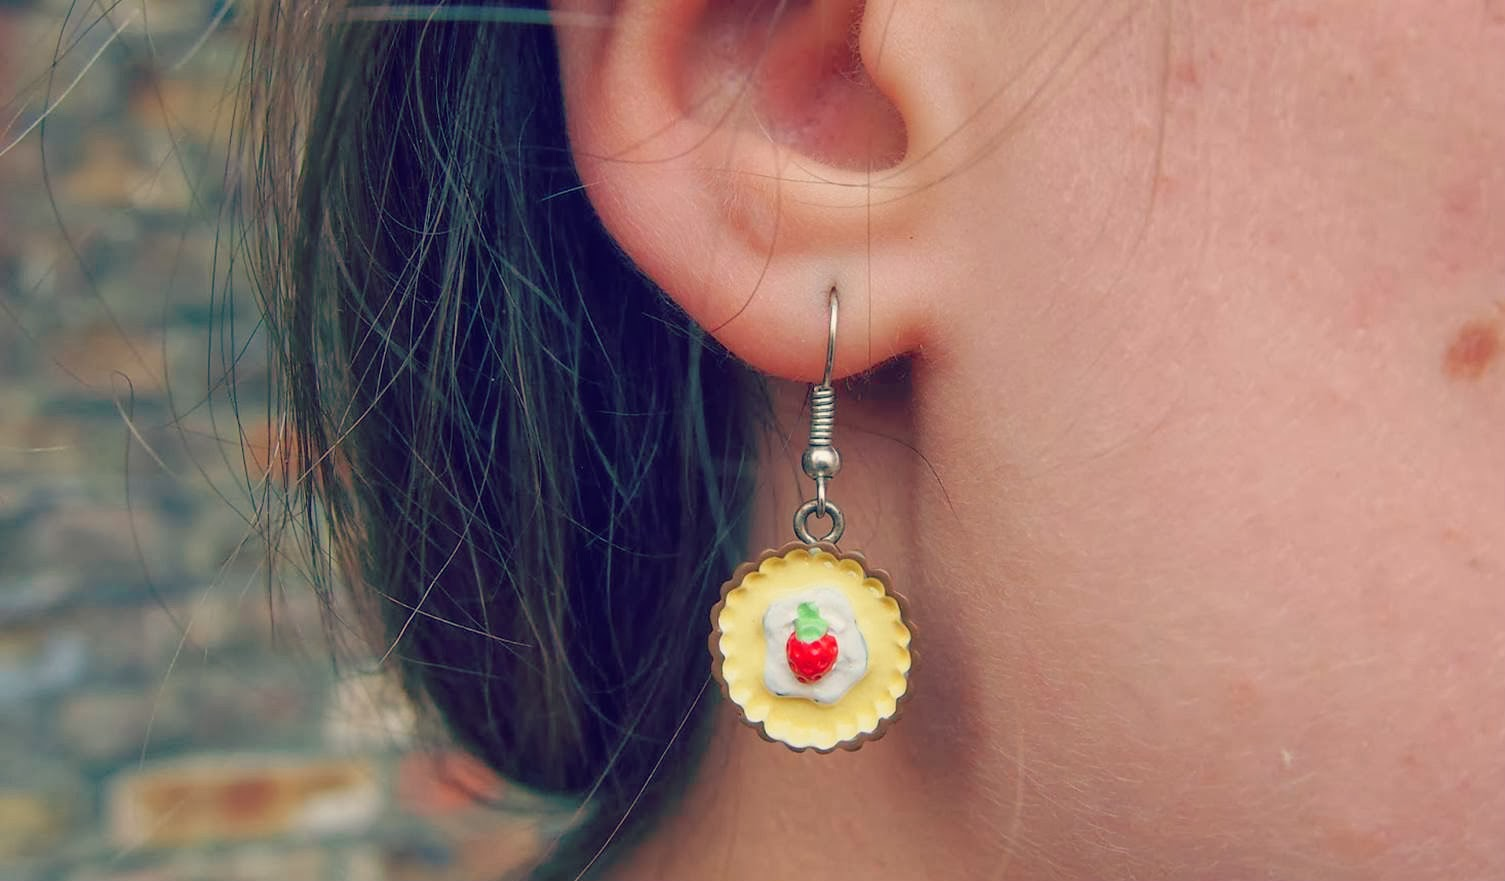 H And M St Ives Earrings- St Ives